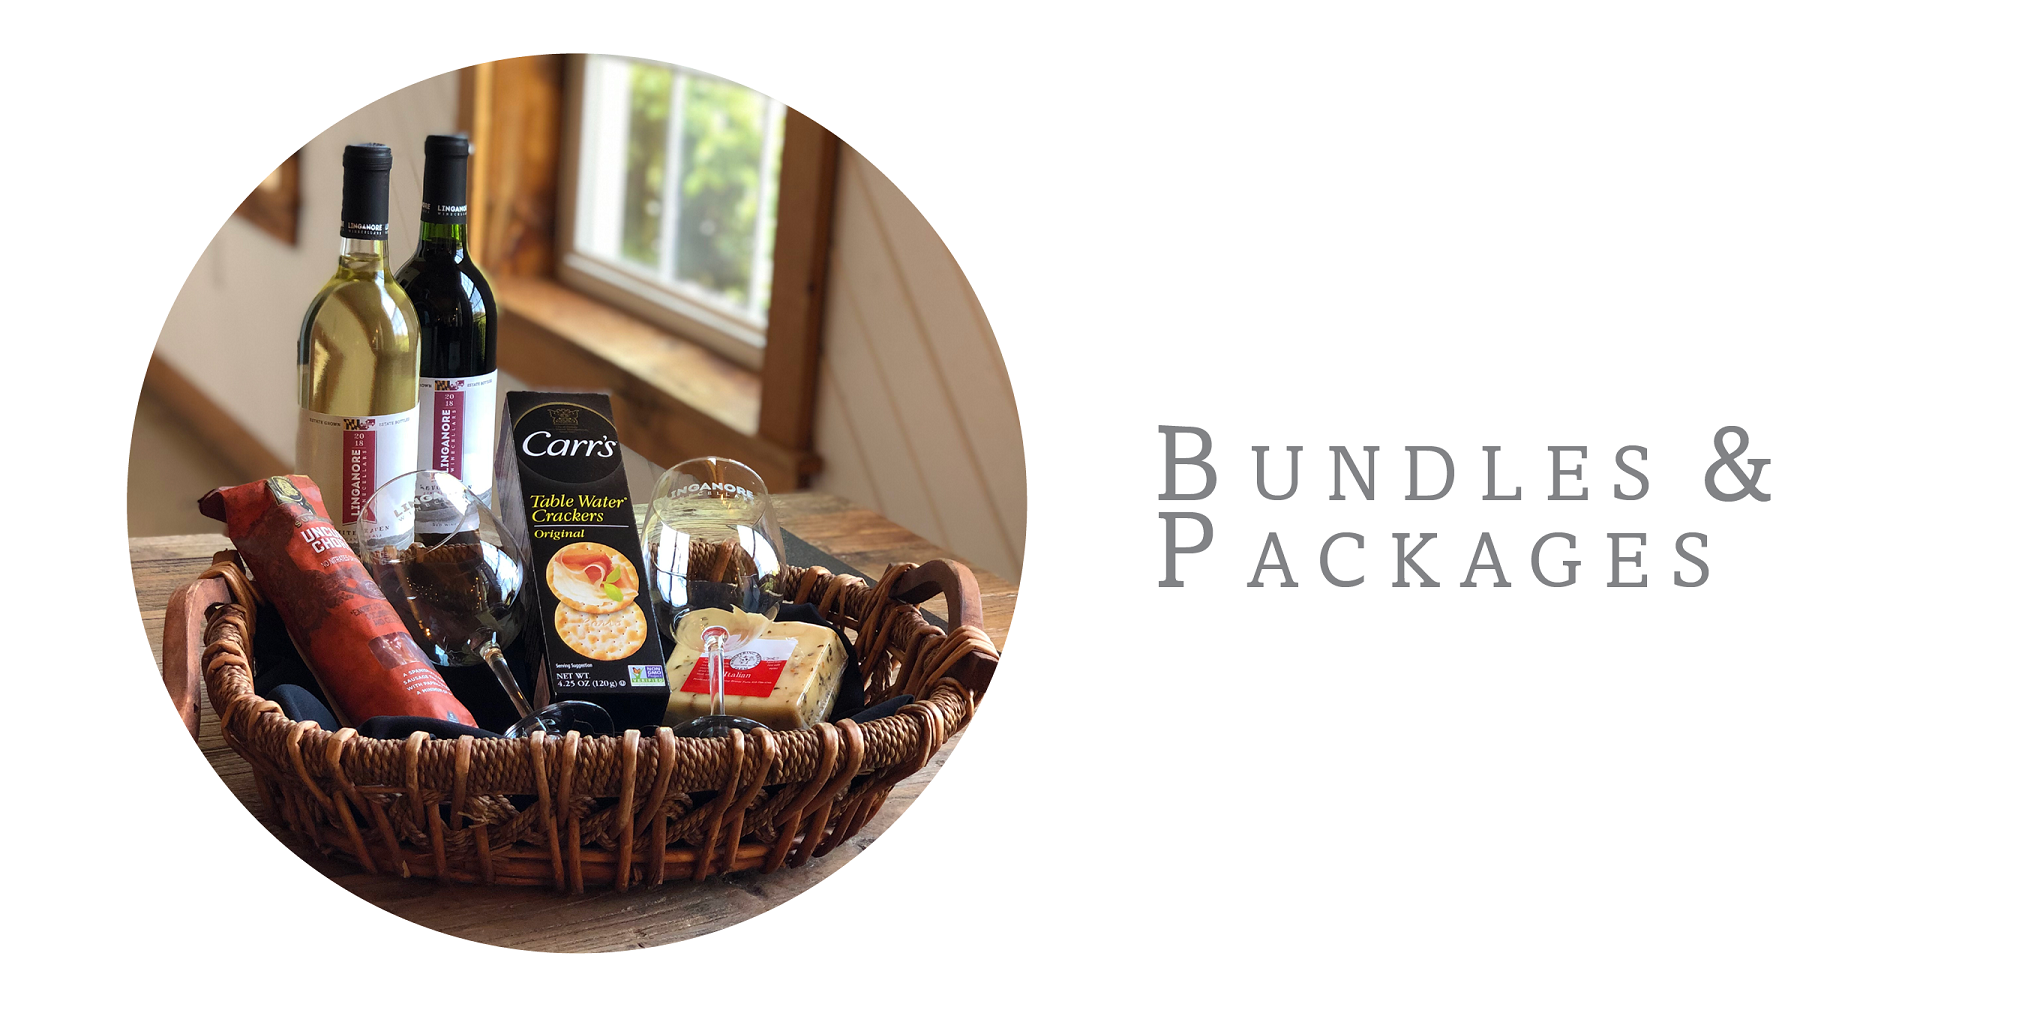 Bundles and Packages